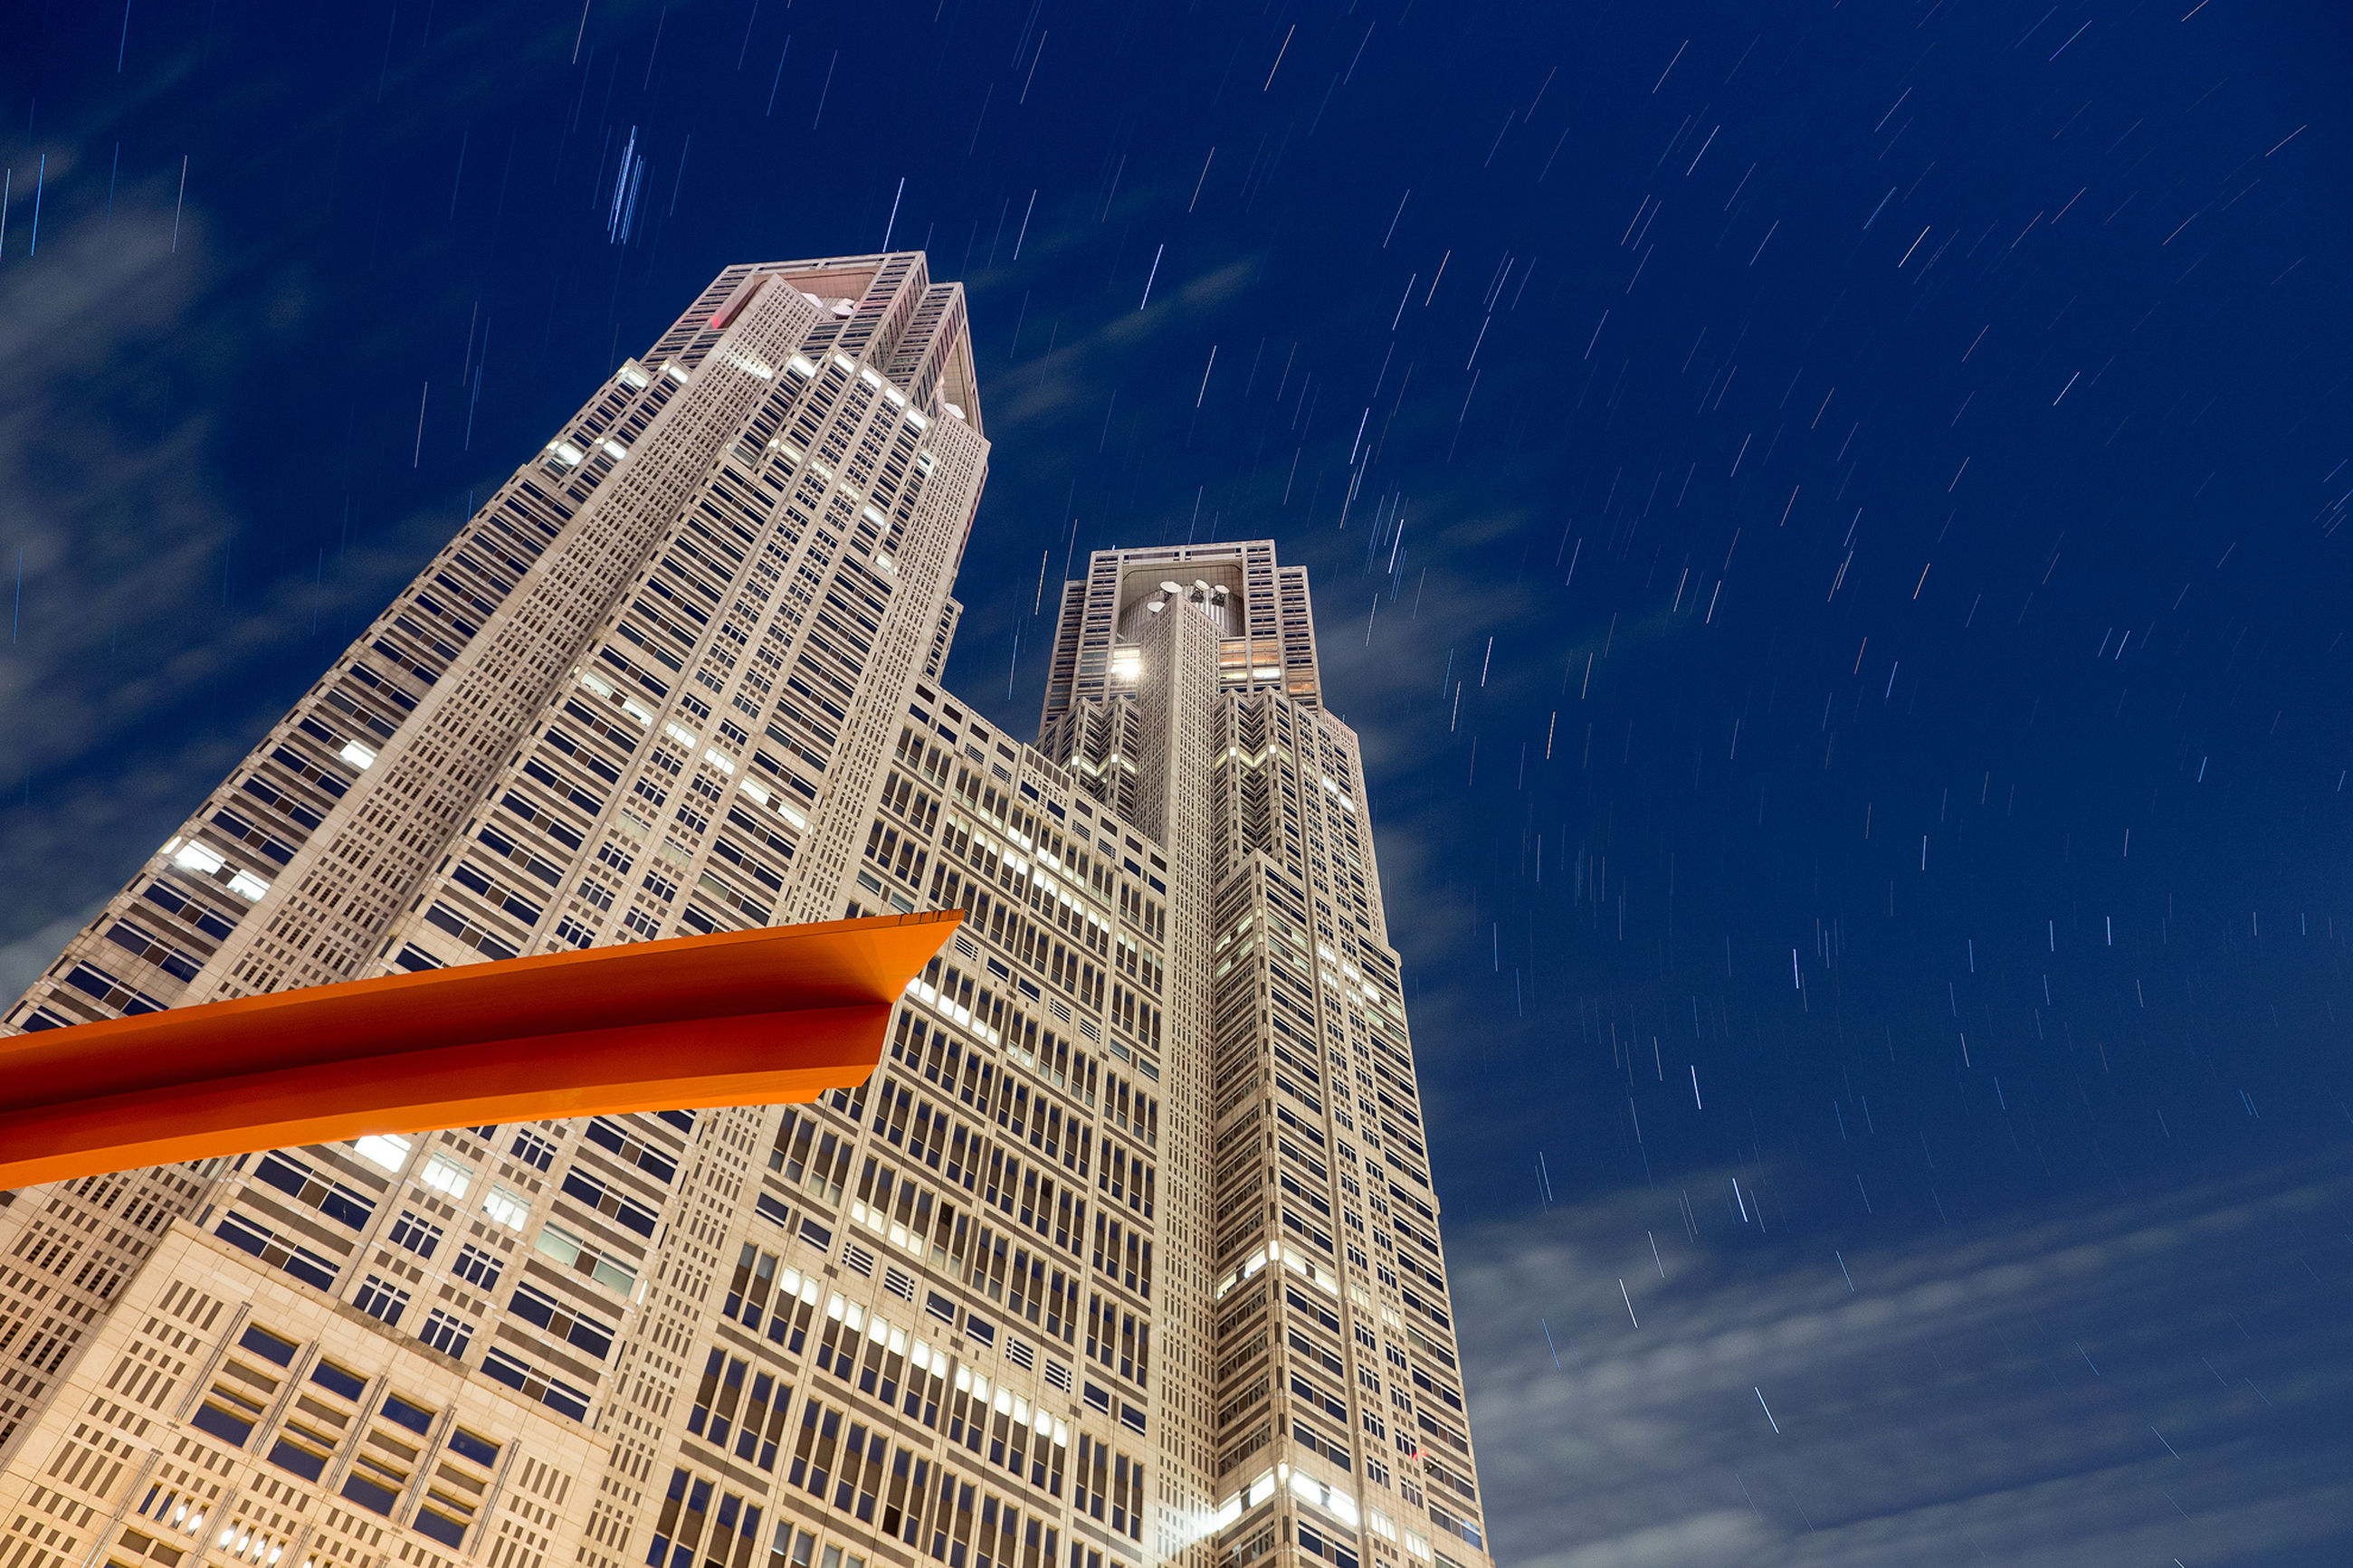 LOW ANGLE VIEW OF MODERN SKYSCRAPERS